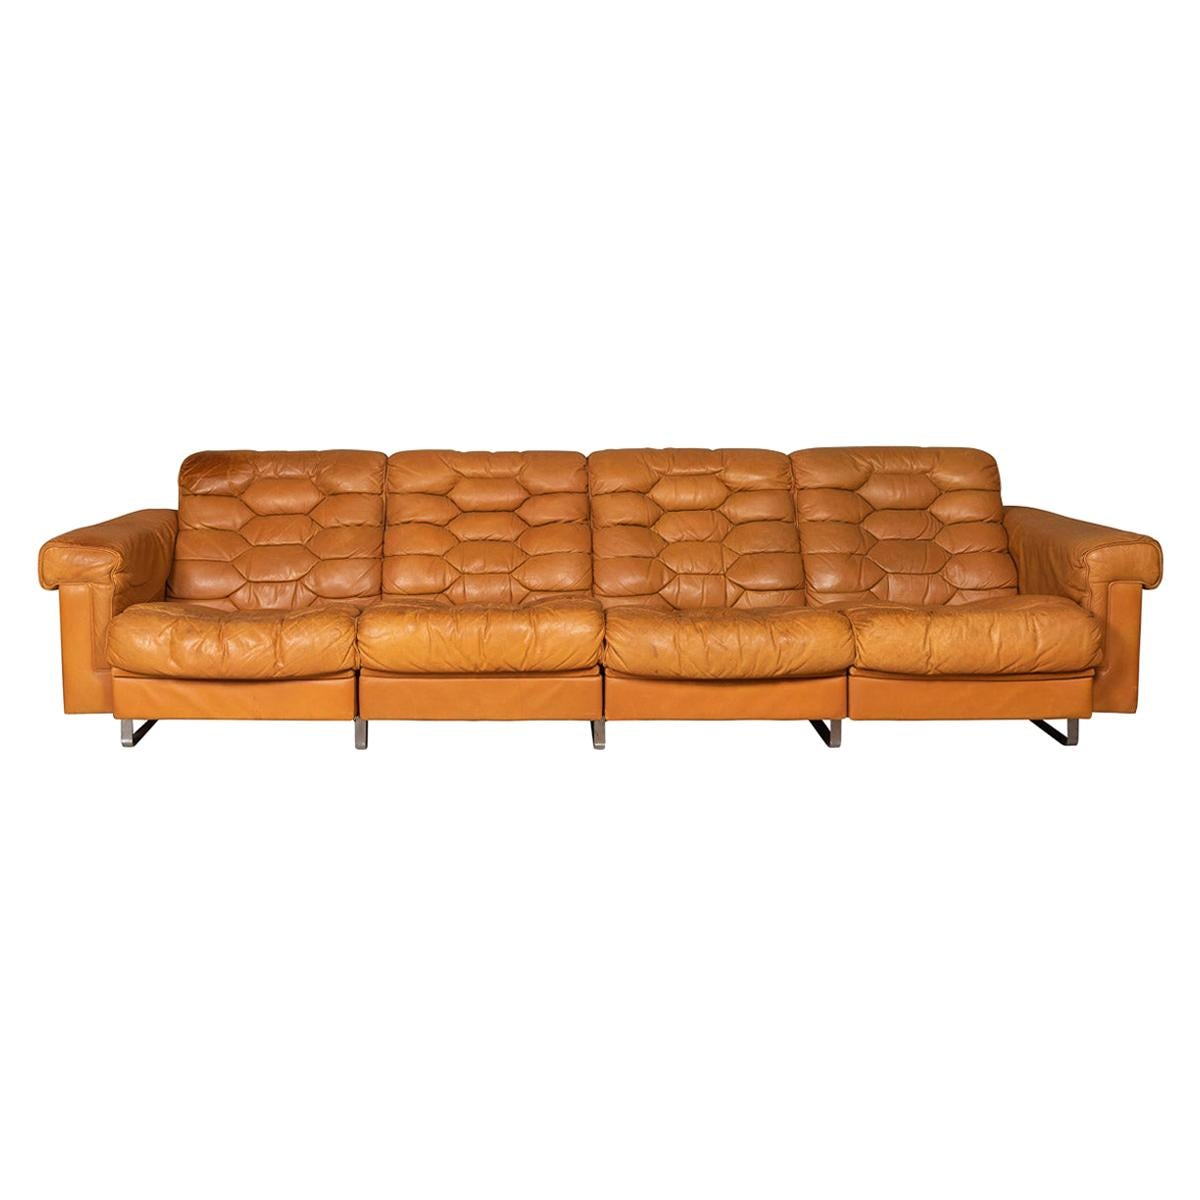 20th Century Italian Four Seater Leather Sofa Reclining Seats, c.1970